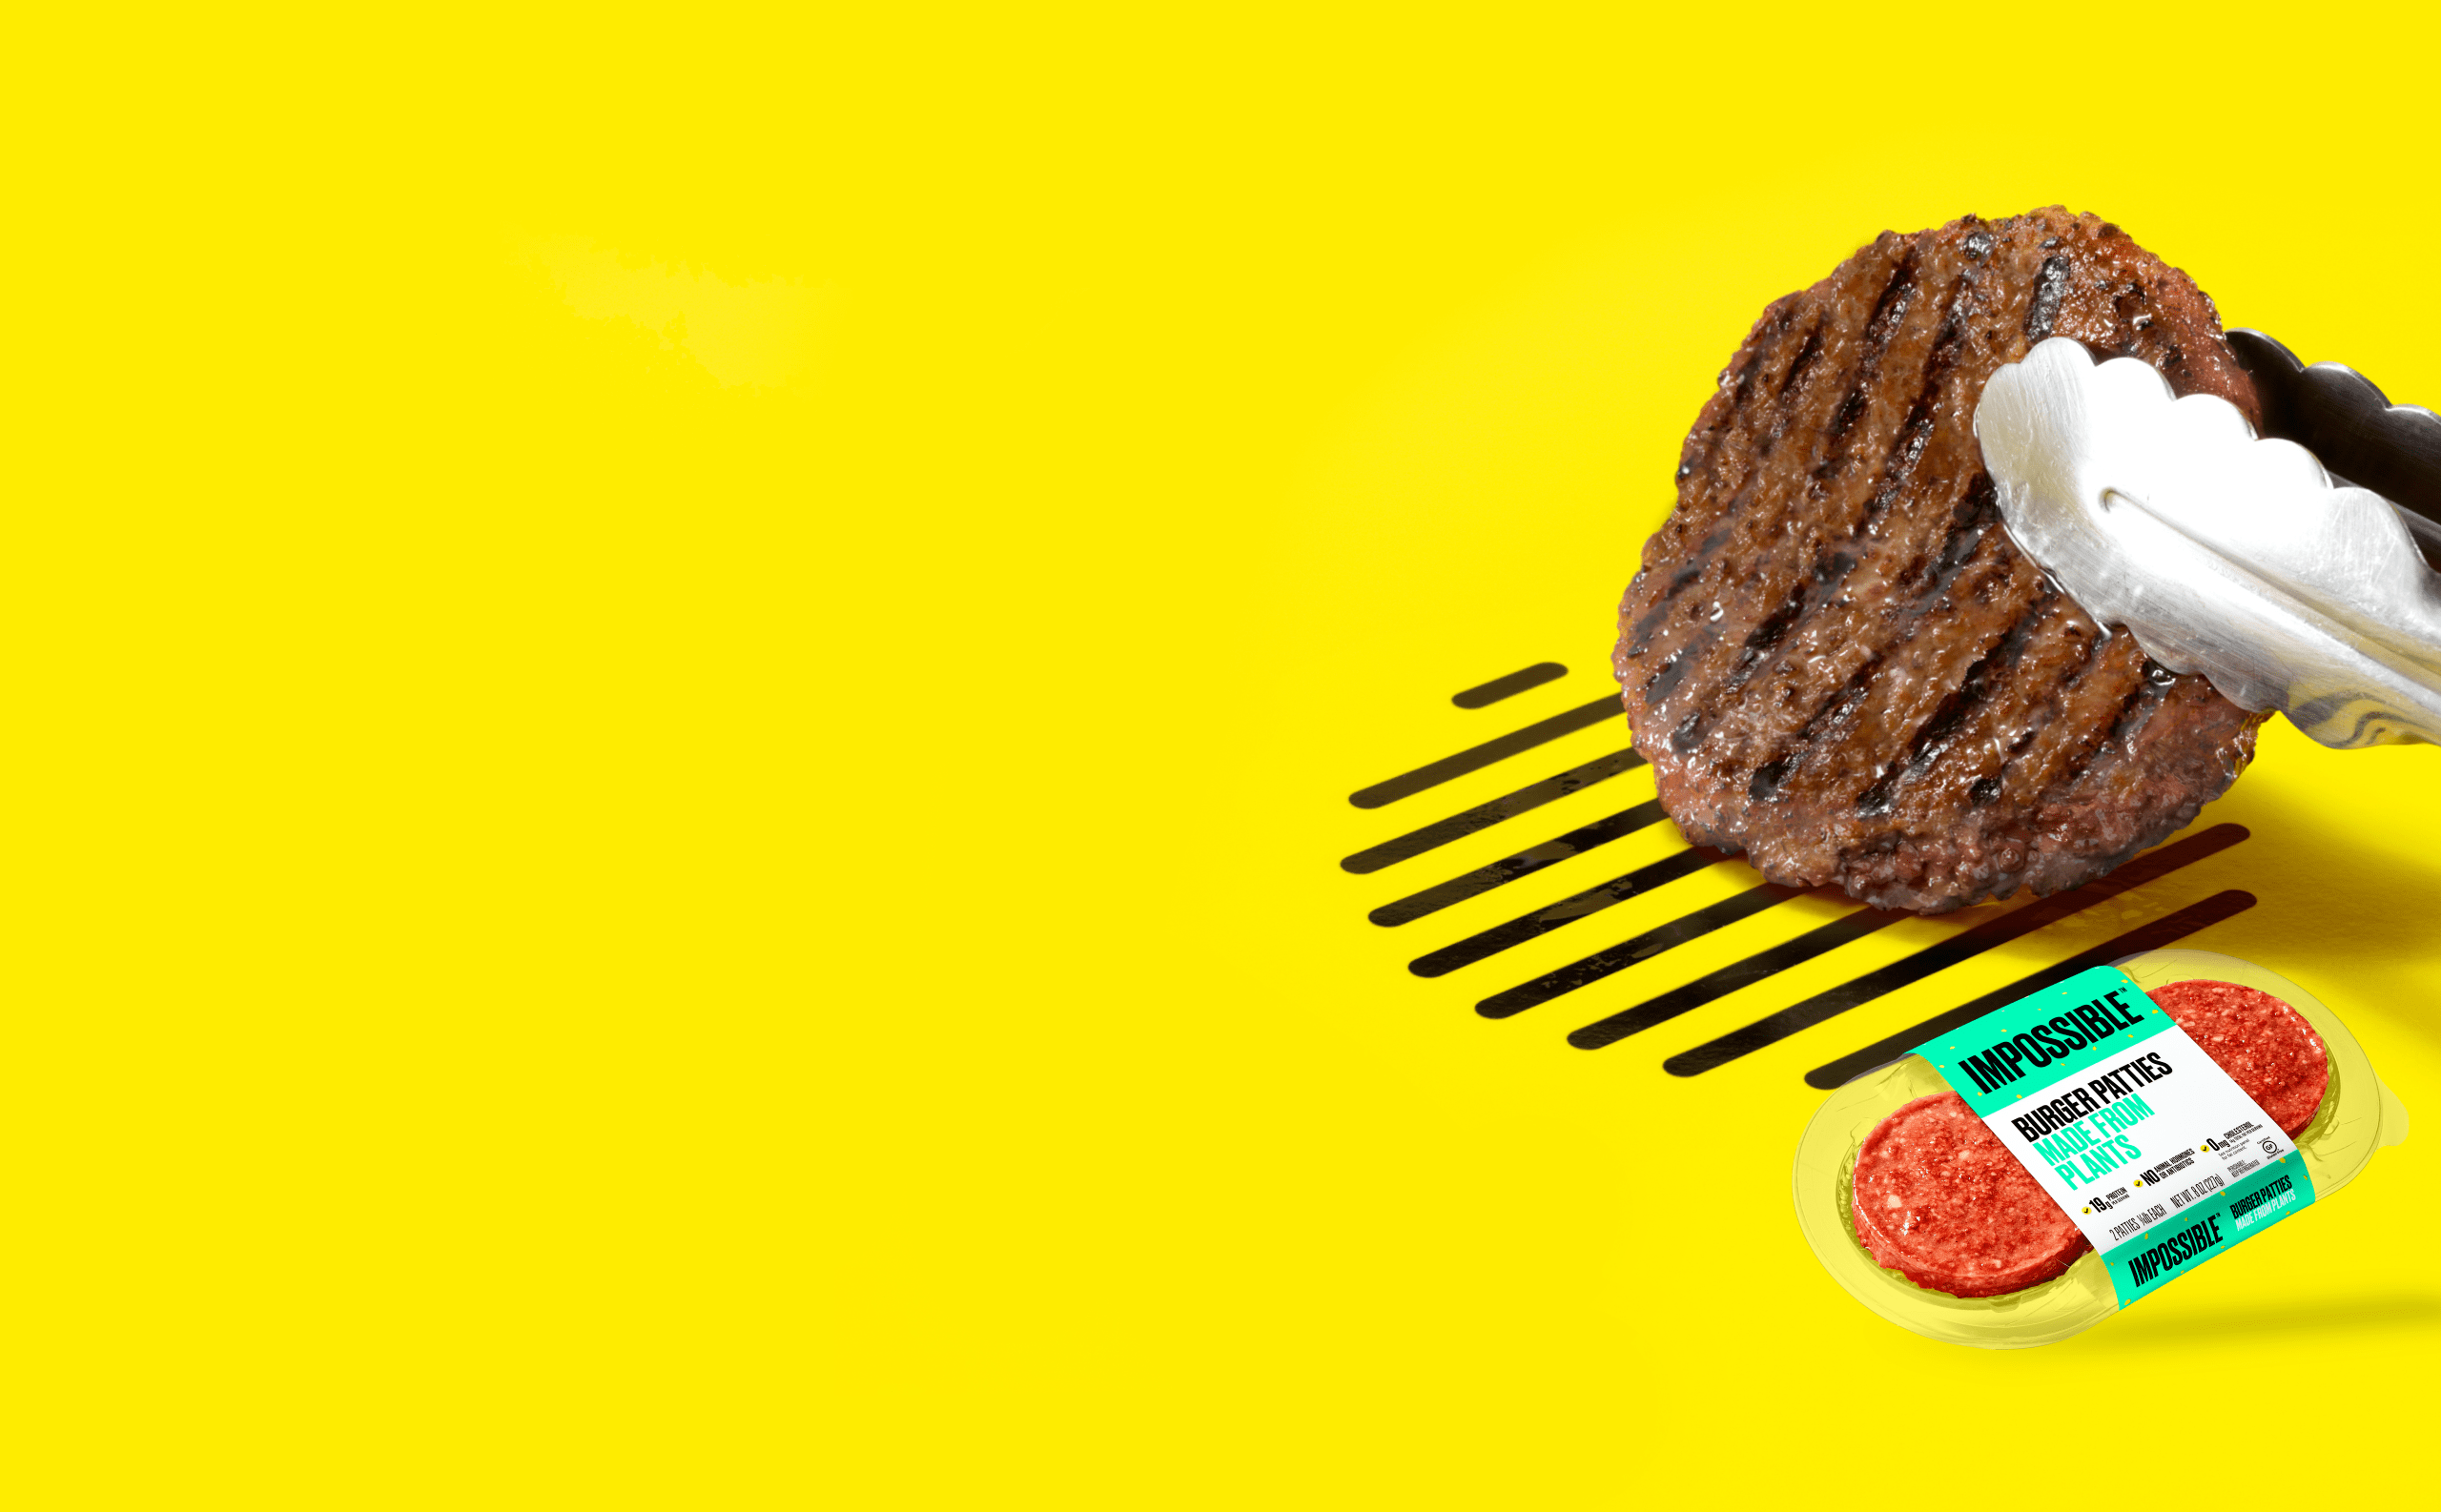 Impossible Burger patty will grill marks held with tongs next to raw Impossible Burger patties 2-pack grocery store packaging on yellow background